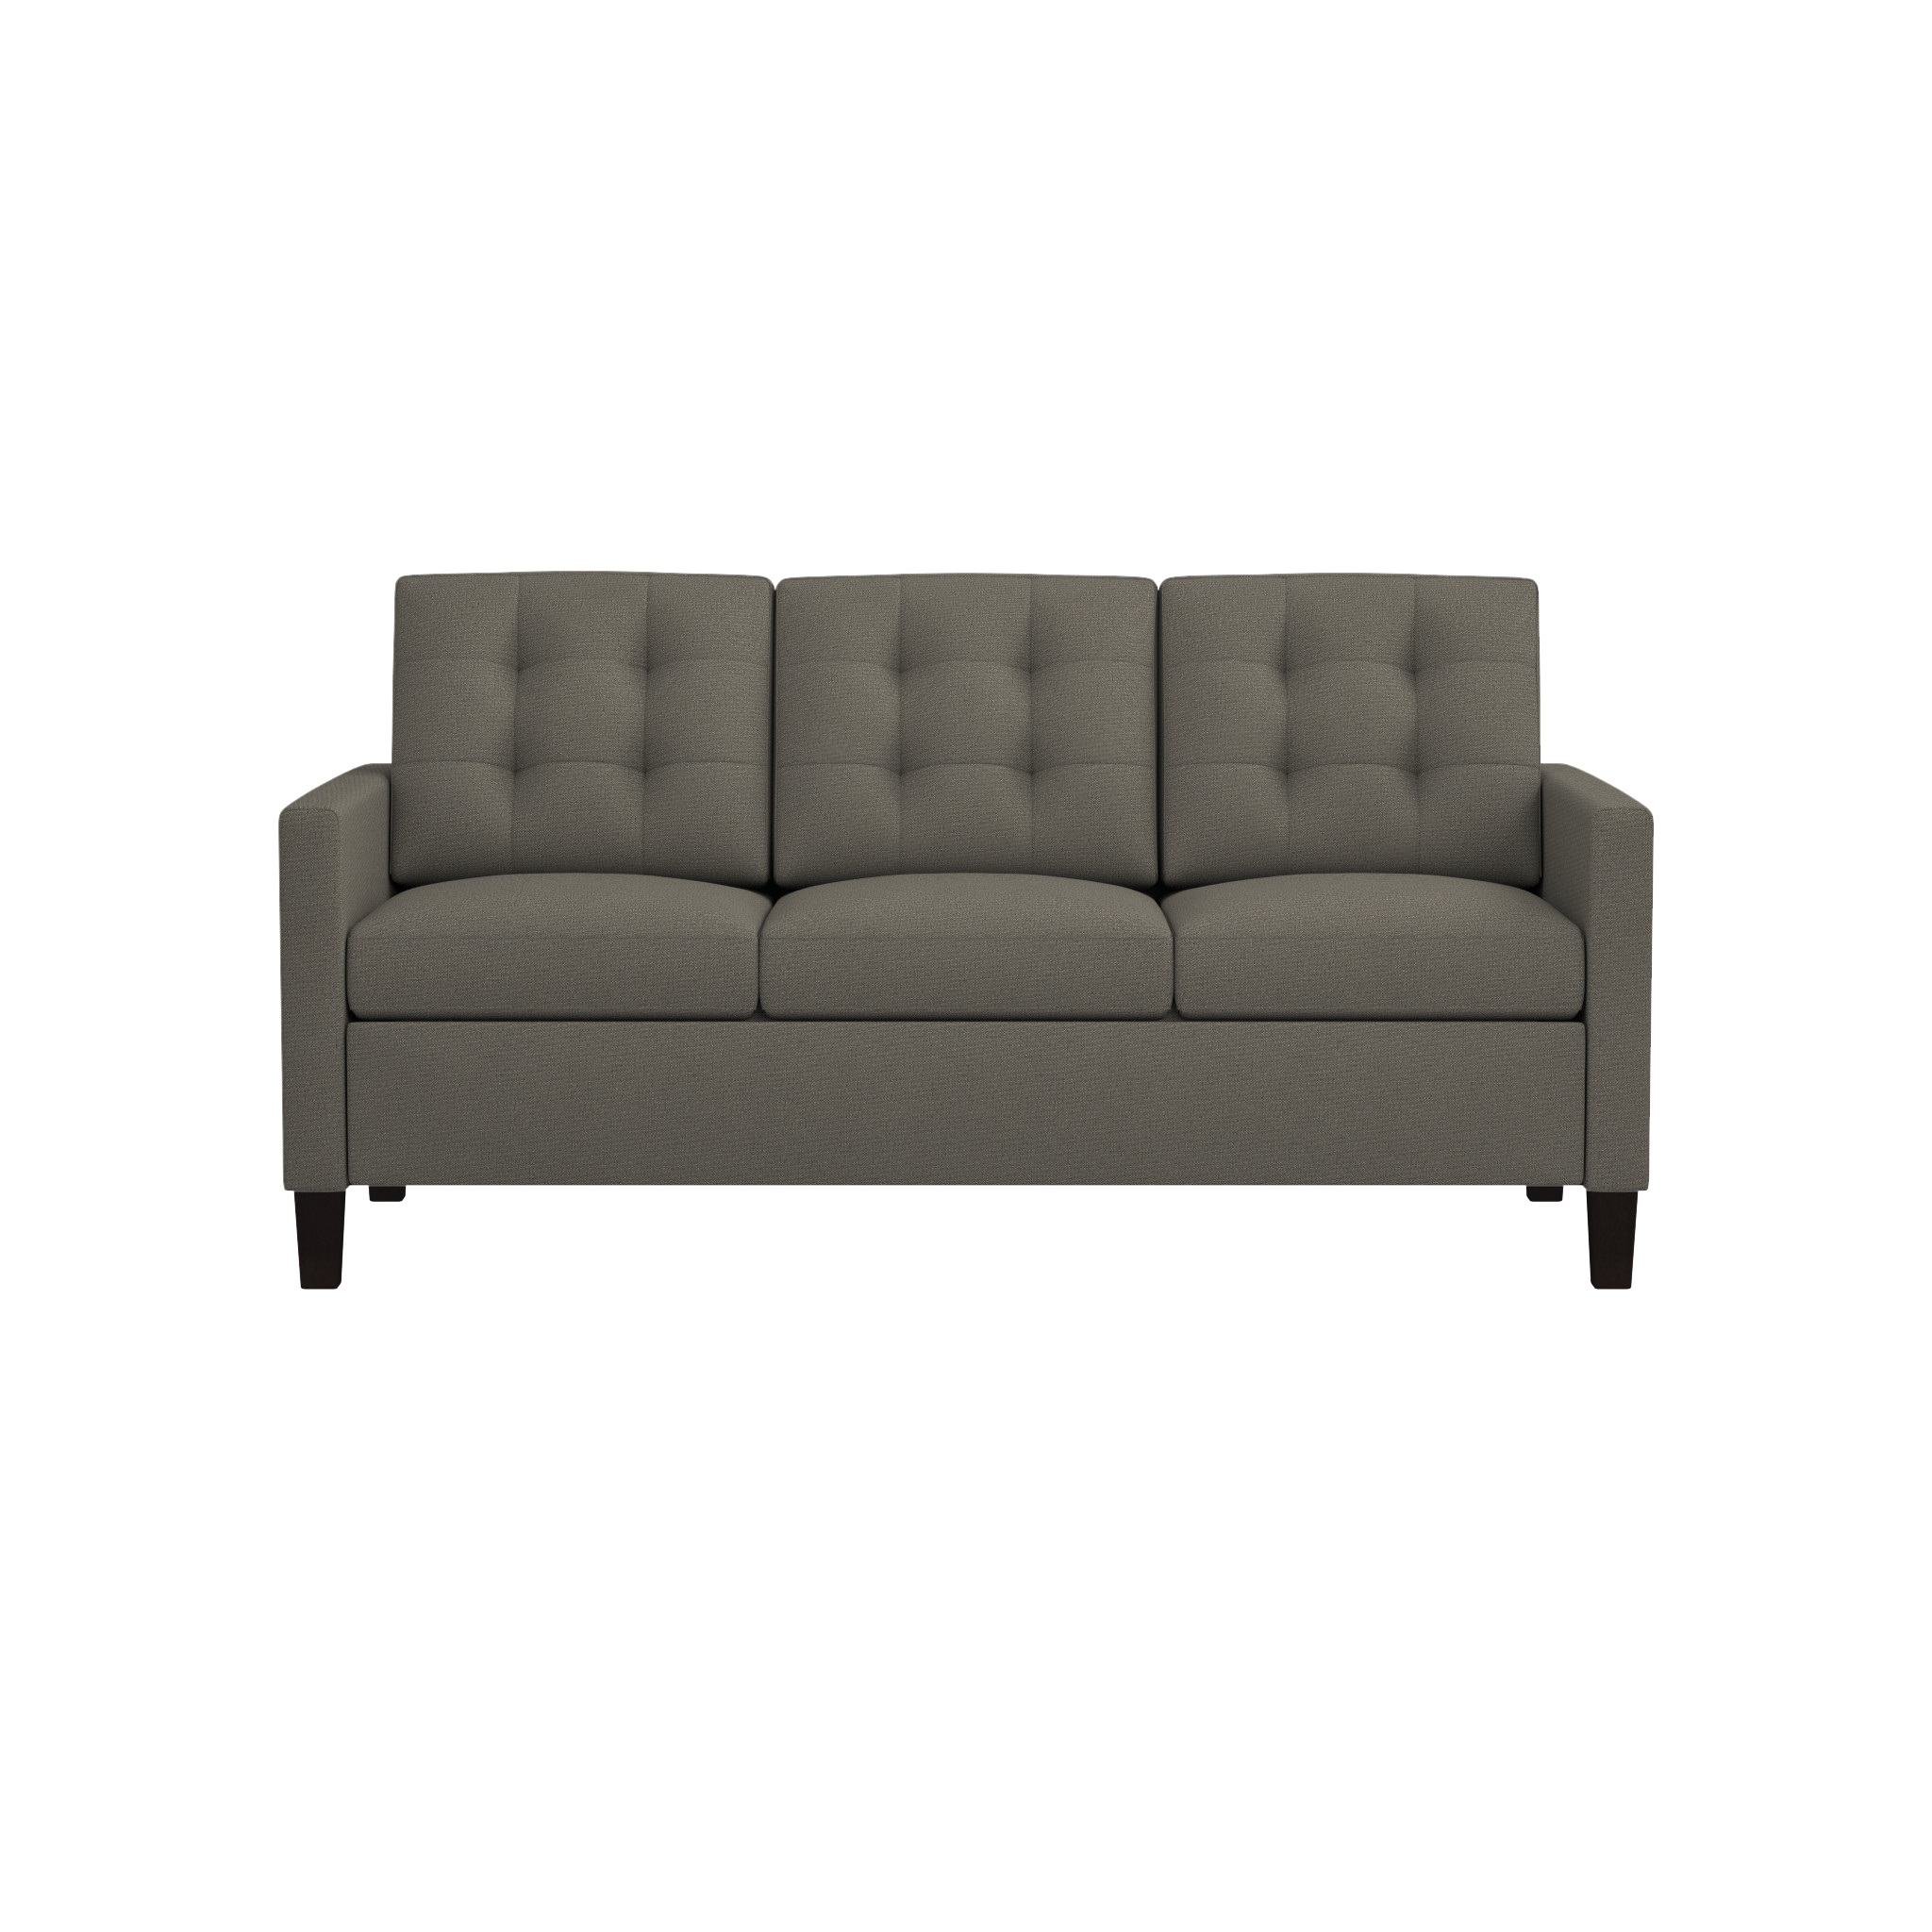 crate and barrel lounge sleeper sofa how do i dispose of my old sofas 20 collection ideas